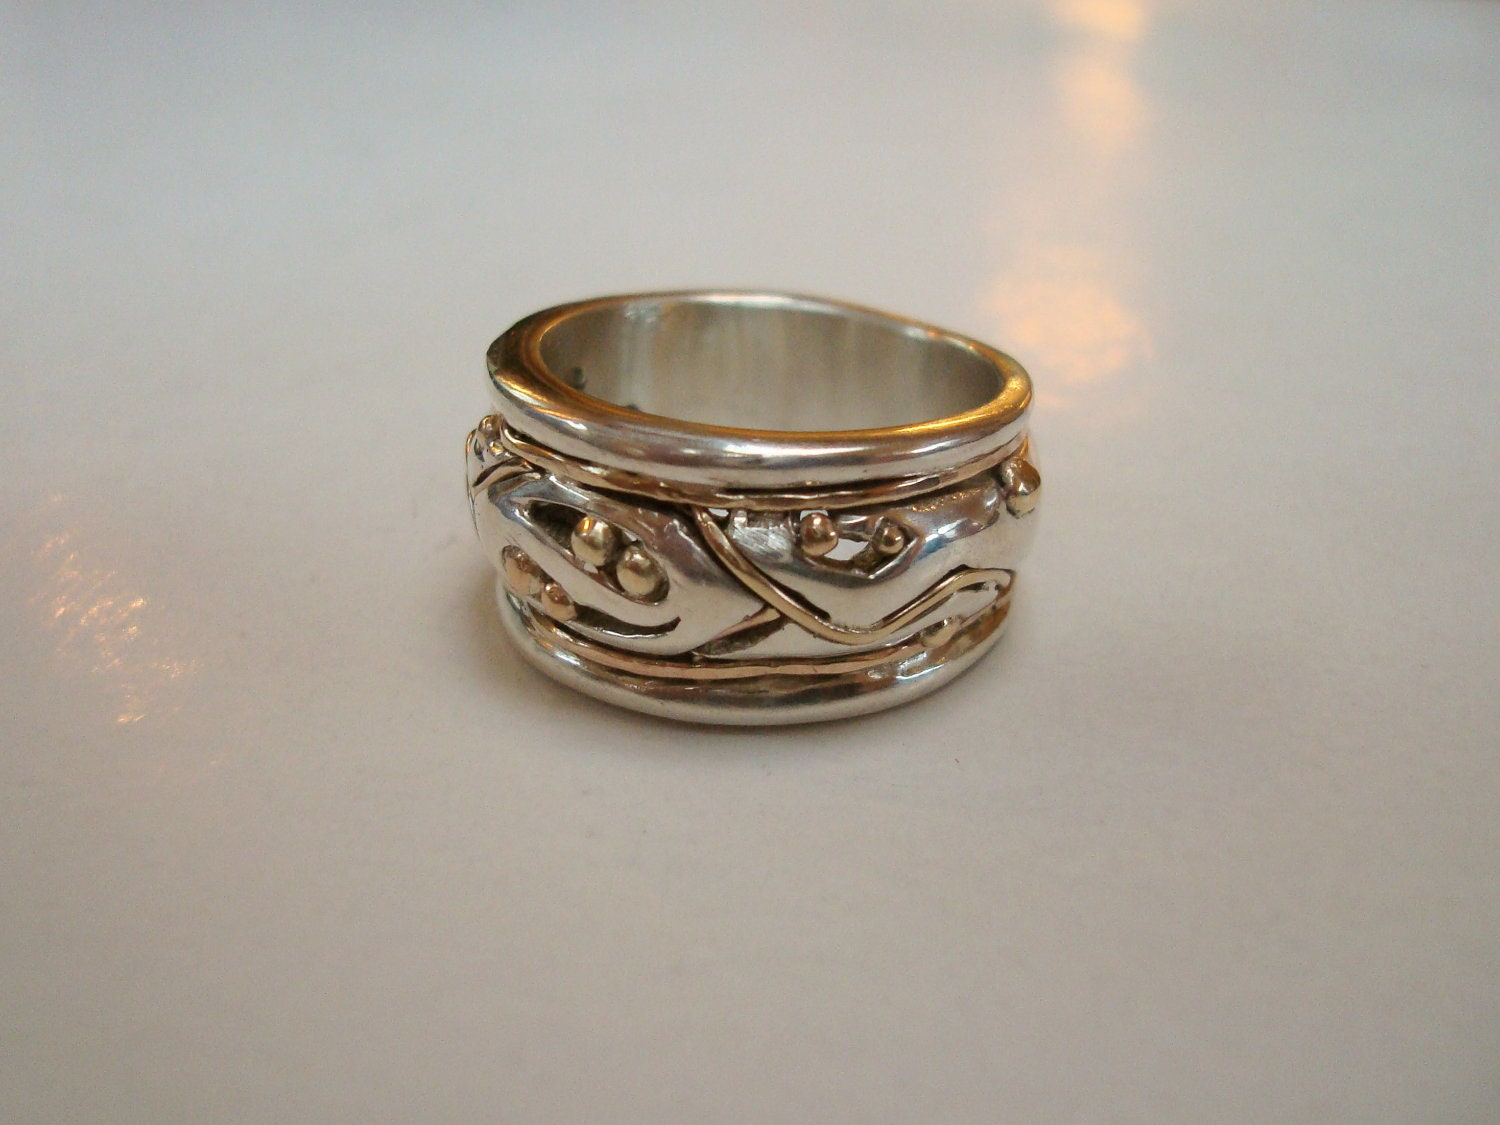 wedding ring gold silver band or right ring sz 6